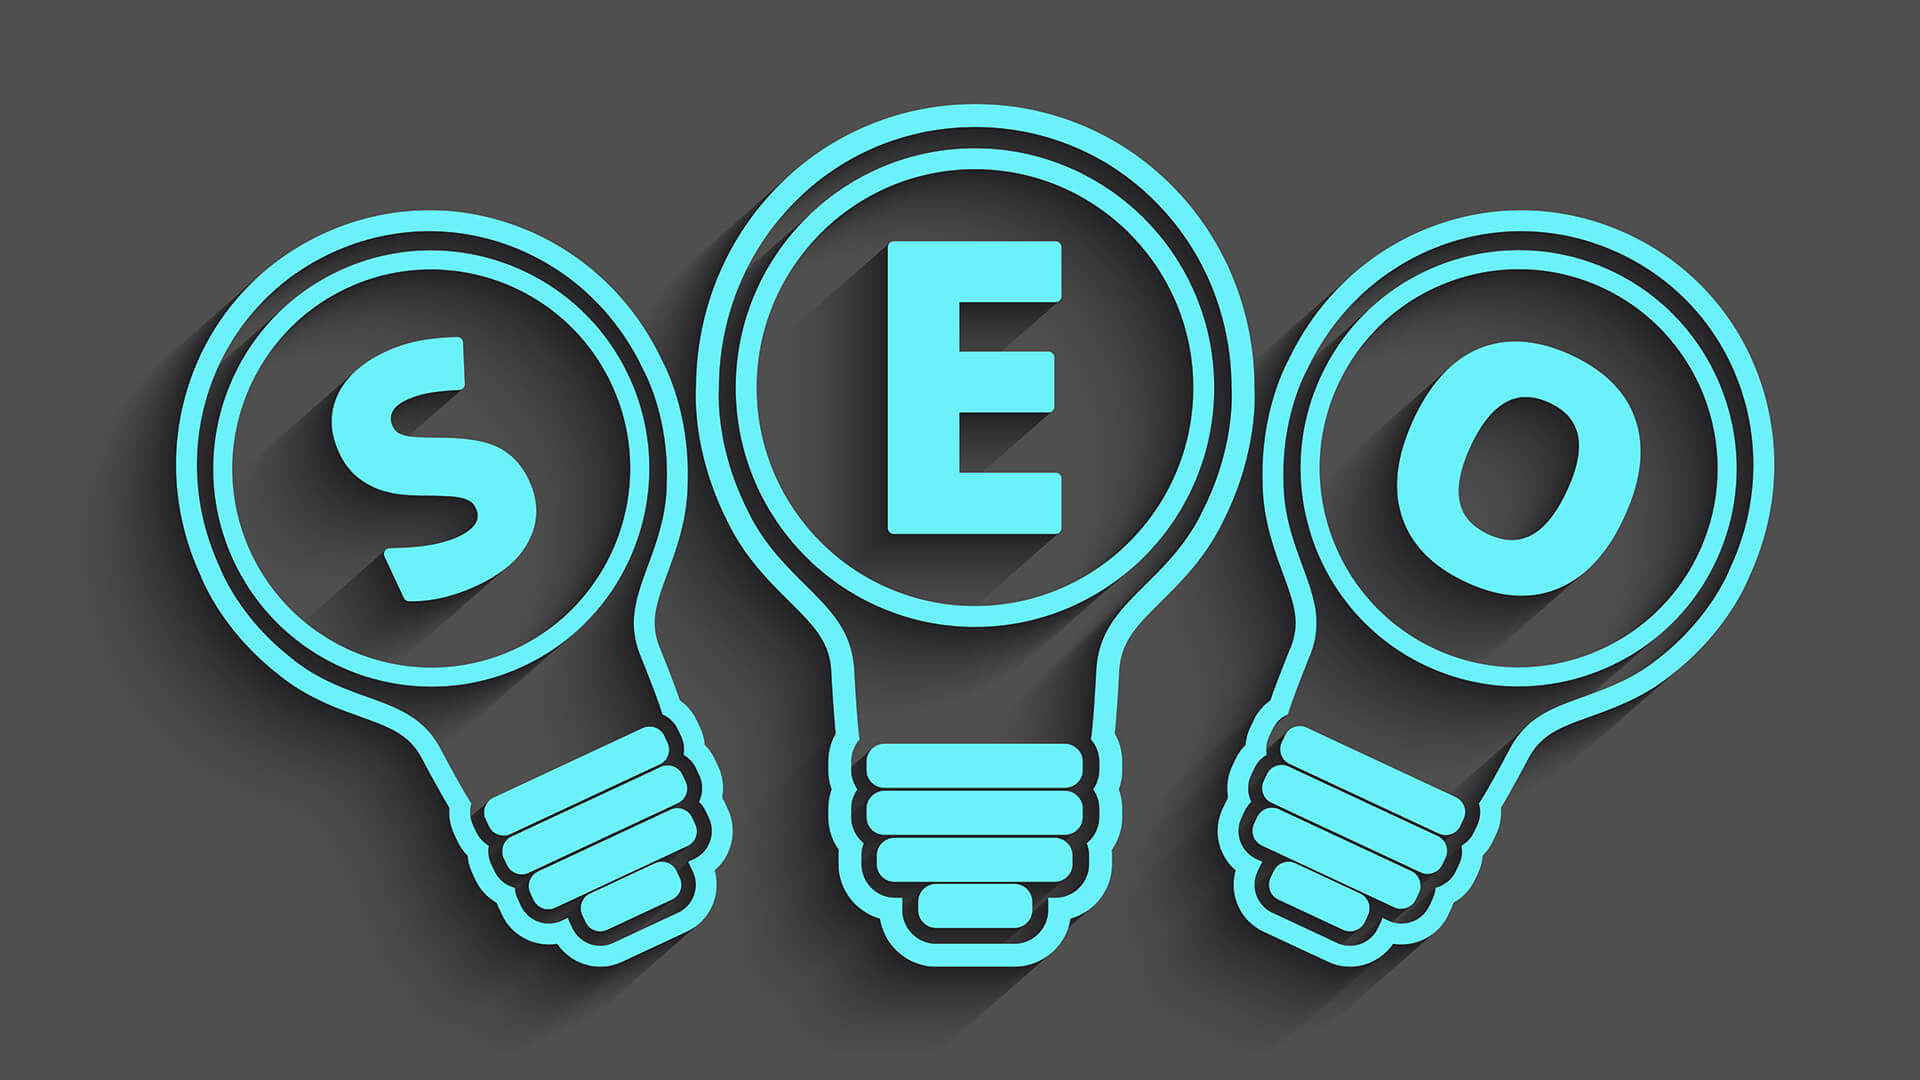 Top Rank Google with 1200 doFollow links to Your Site from Unique Domains.